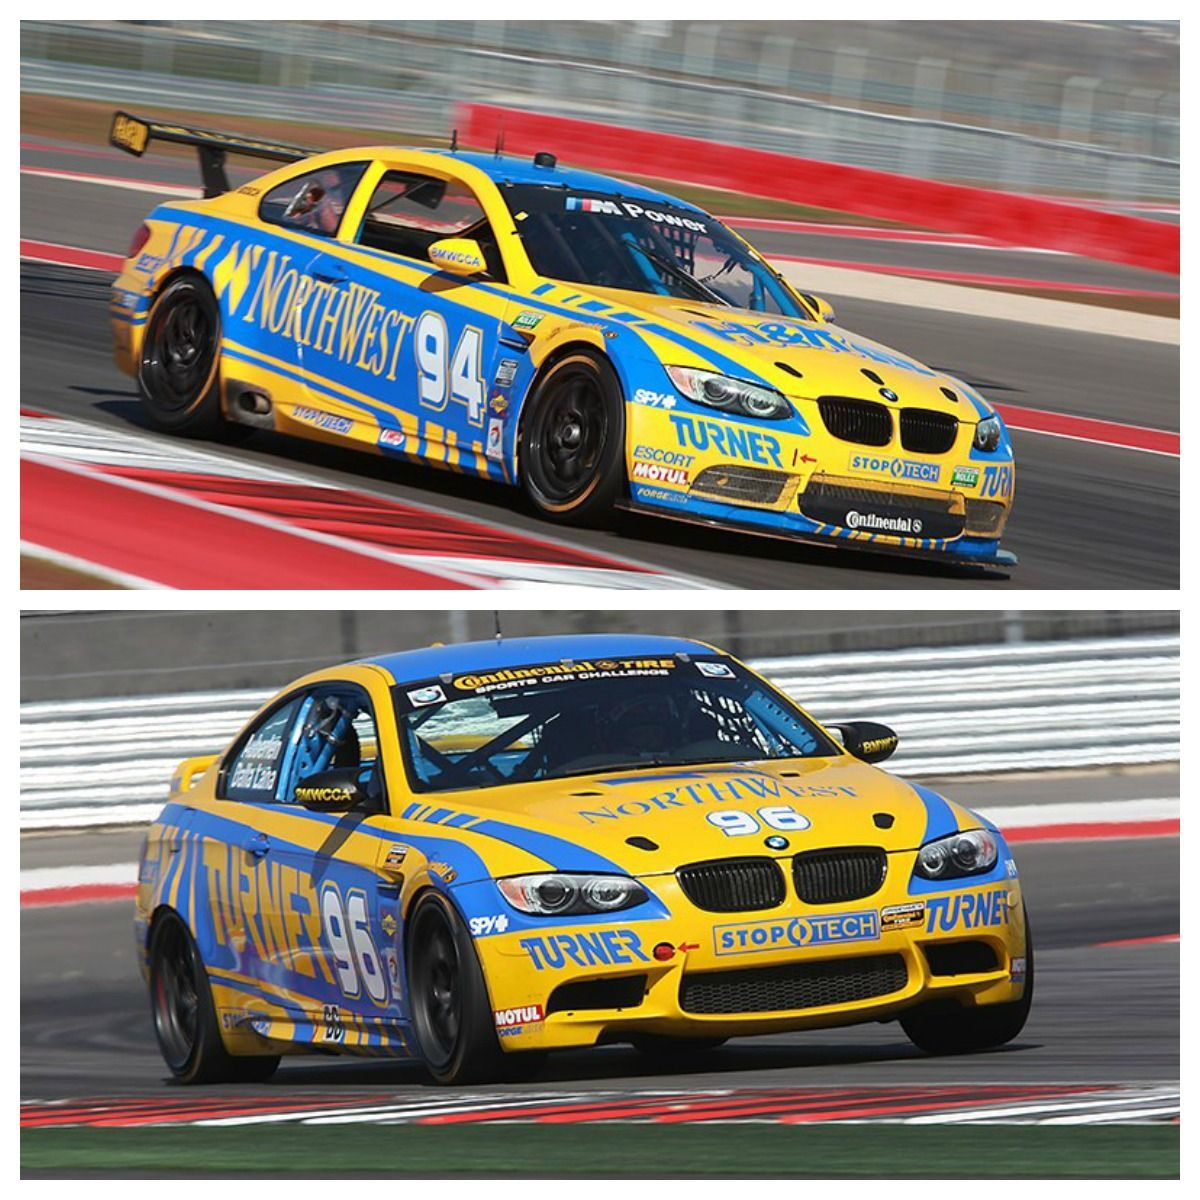 2011 BMW M3 | Turner Motorsport Dominates First Ever Grand-Am Race at Circuit of the Americas on Forgeline GA3R Wheels